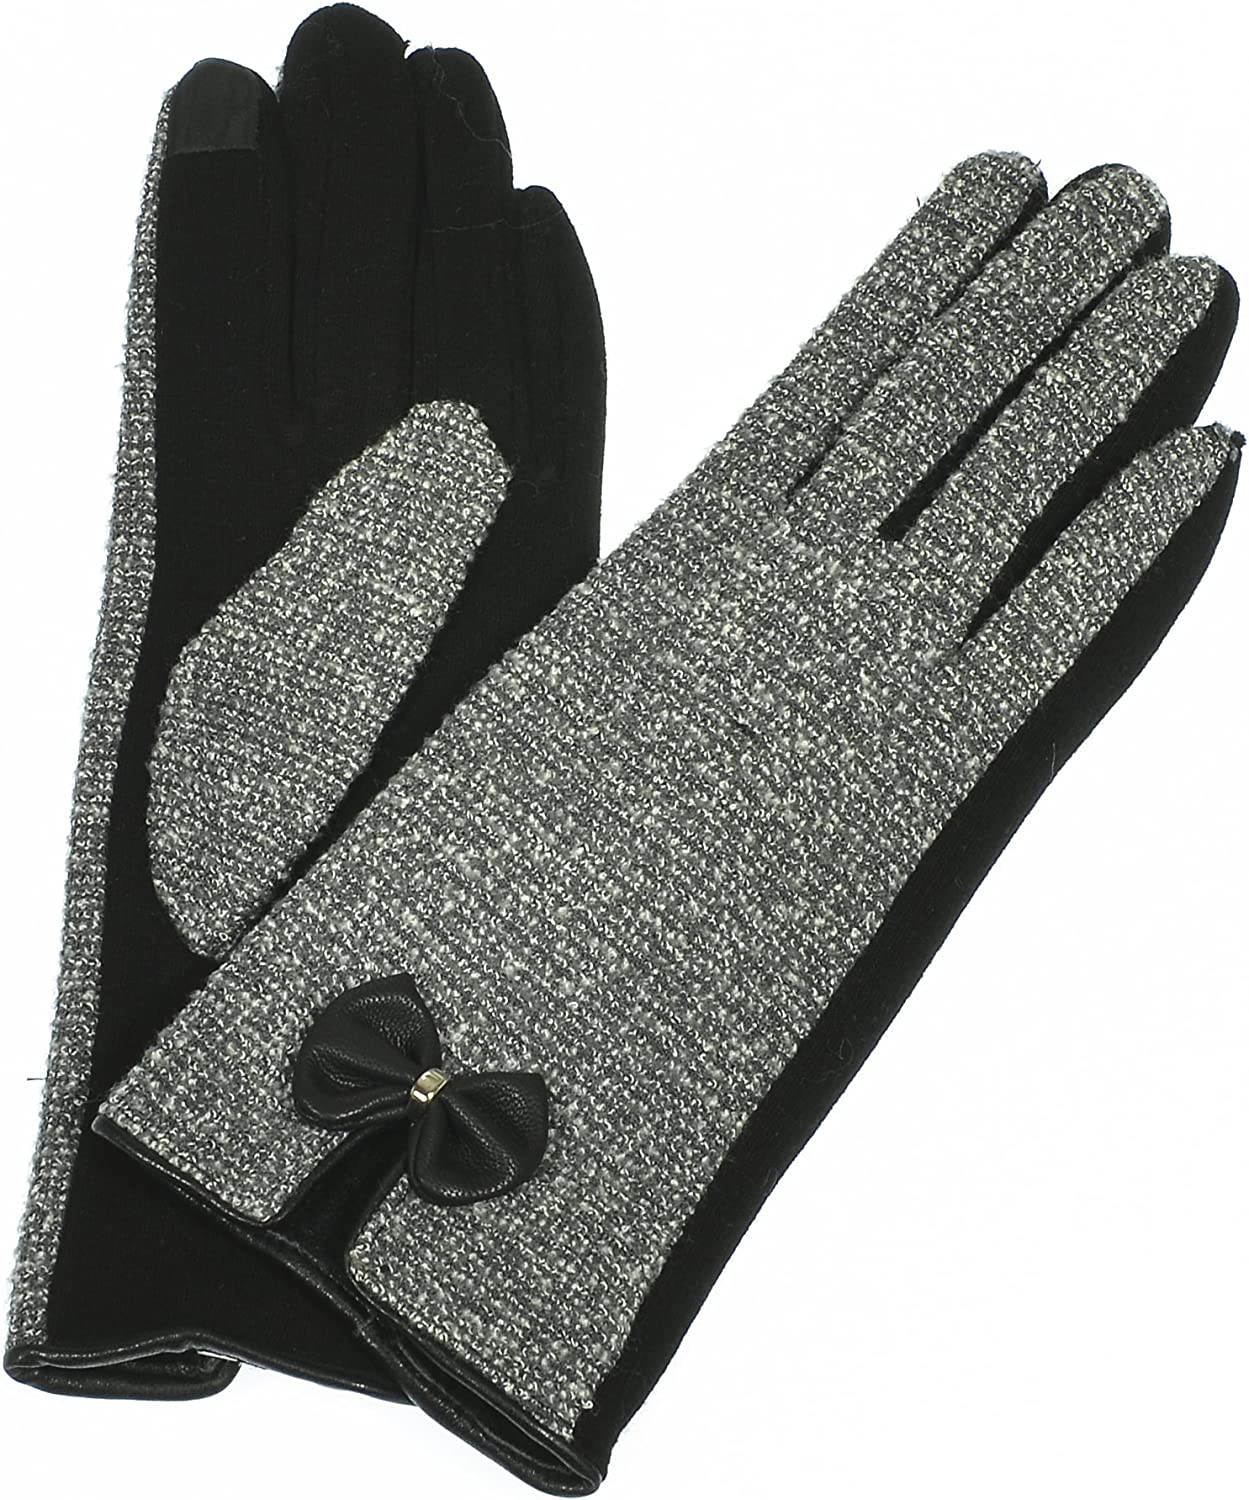 Hand By Hand Women's Touch Screen Gloves Bow-Tie Plush Lined Warmth